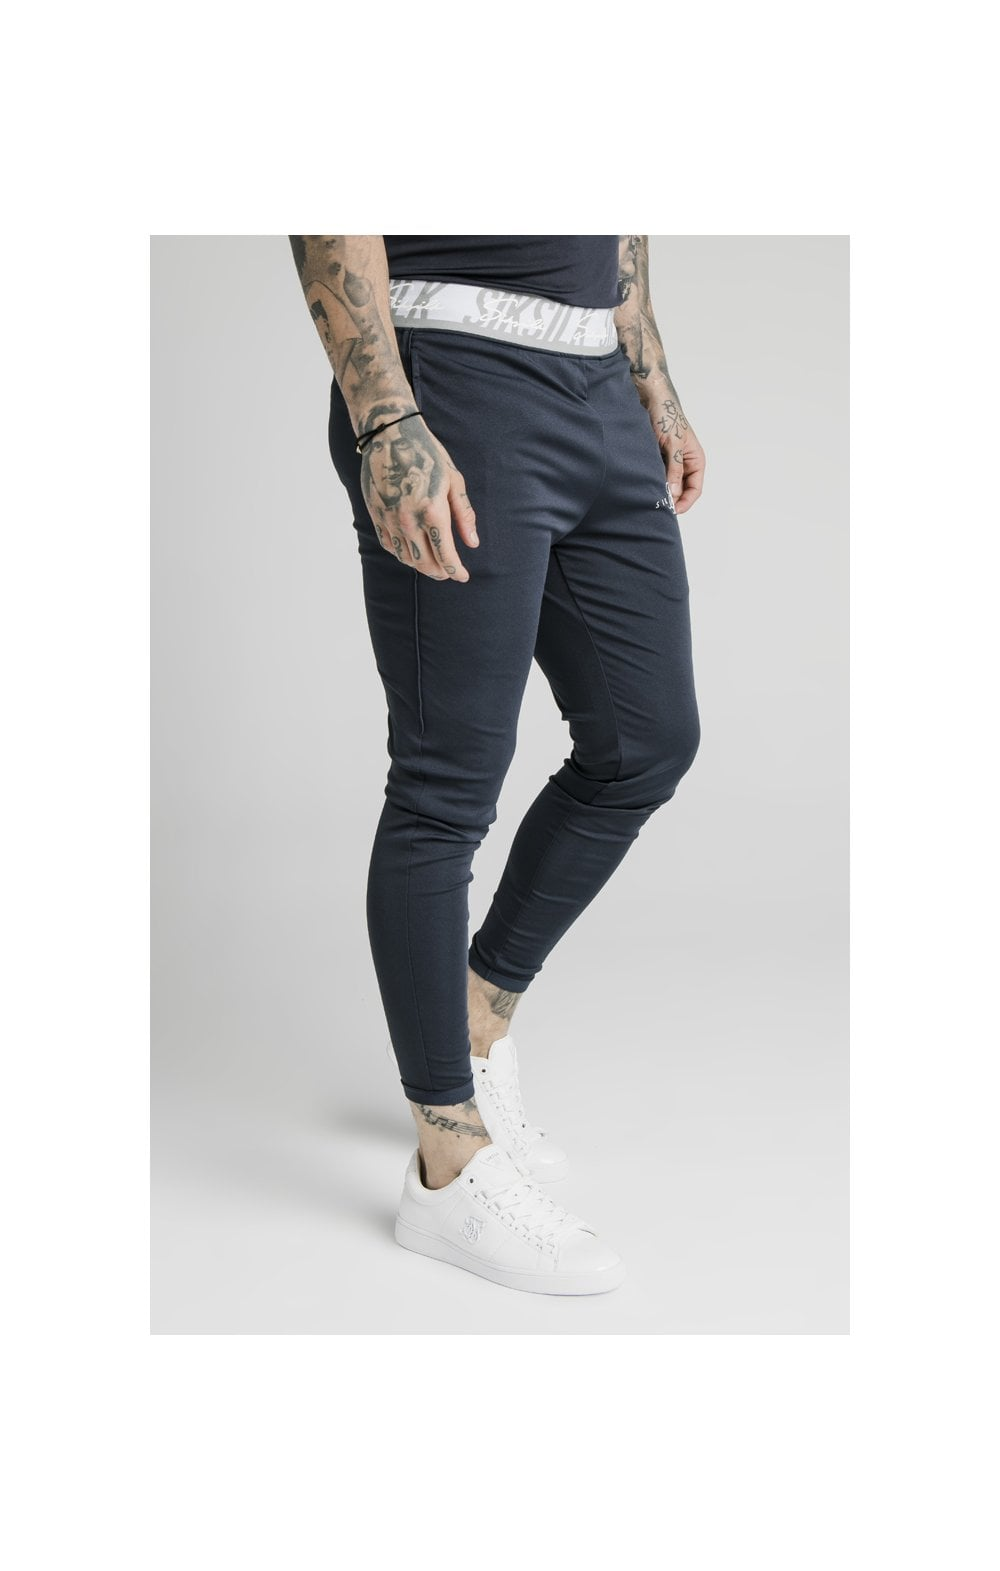 SikSilk Scope Tape Track Pant - Navy (1)